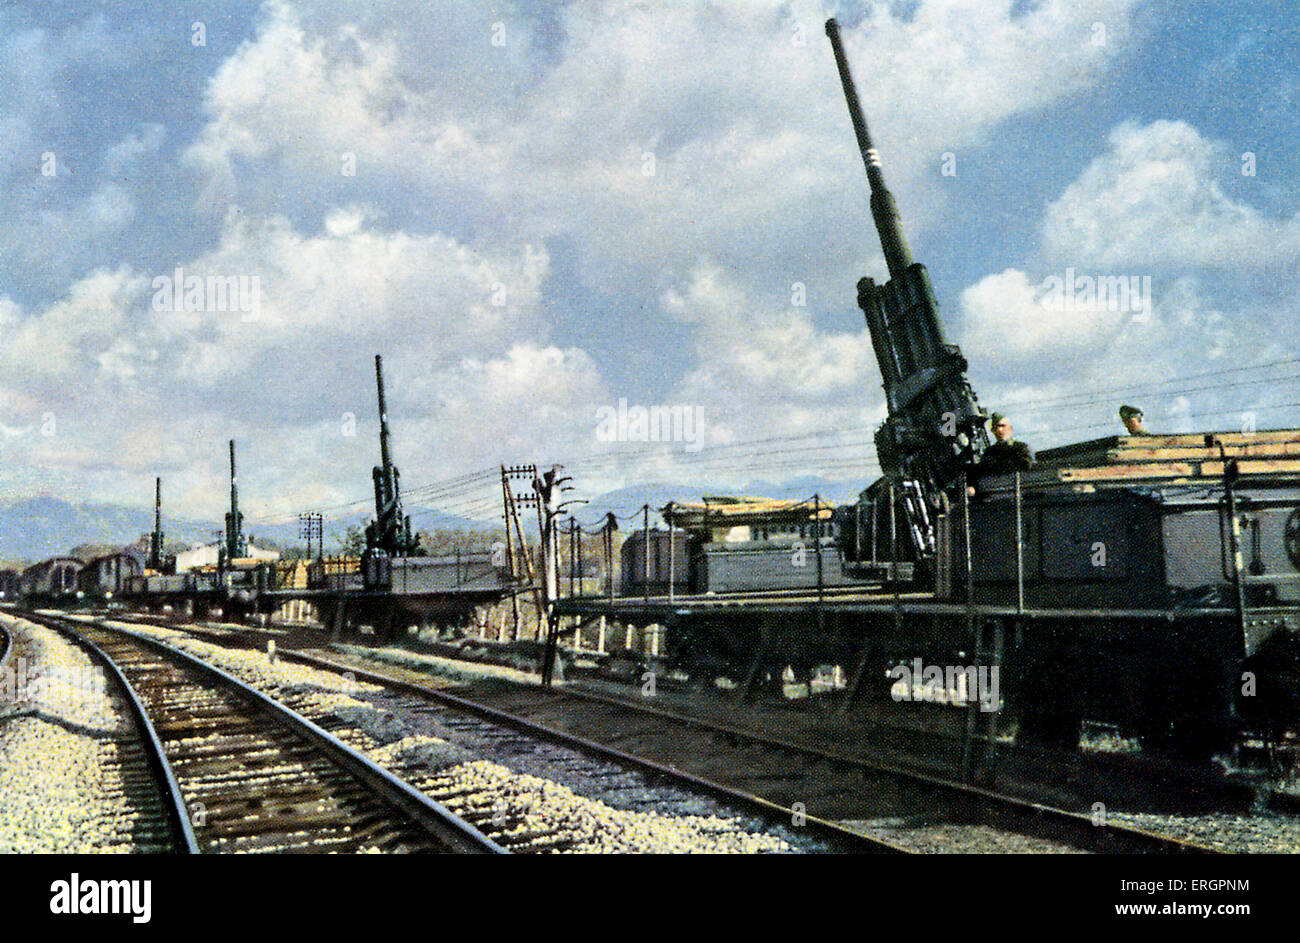 WW2 - Eastern Front. Protection against air attack, German artillery guns mounted on trains. - Stock Image